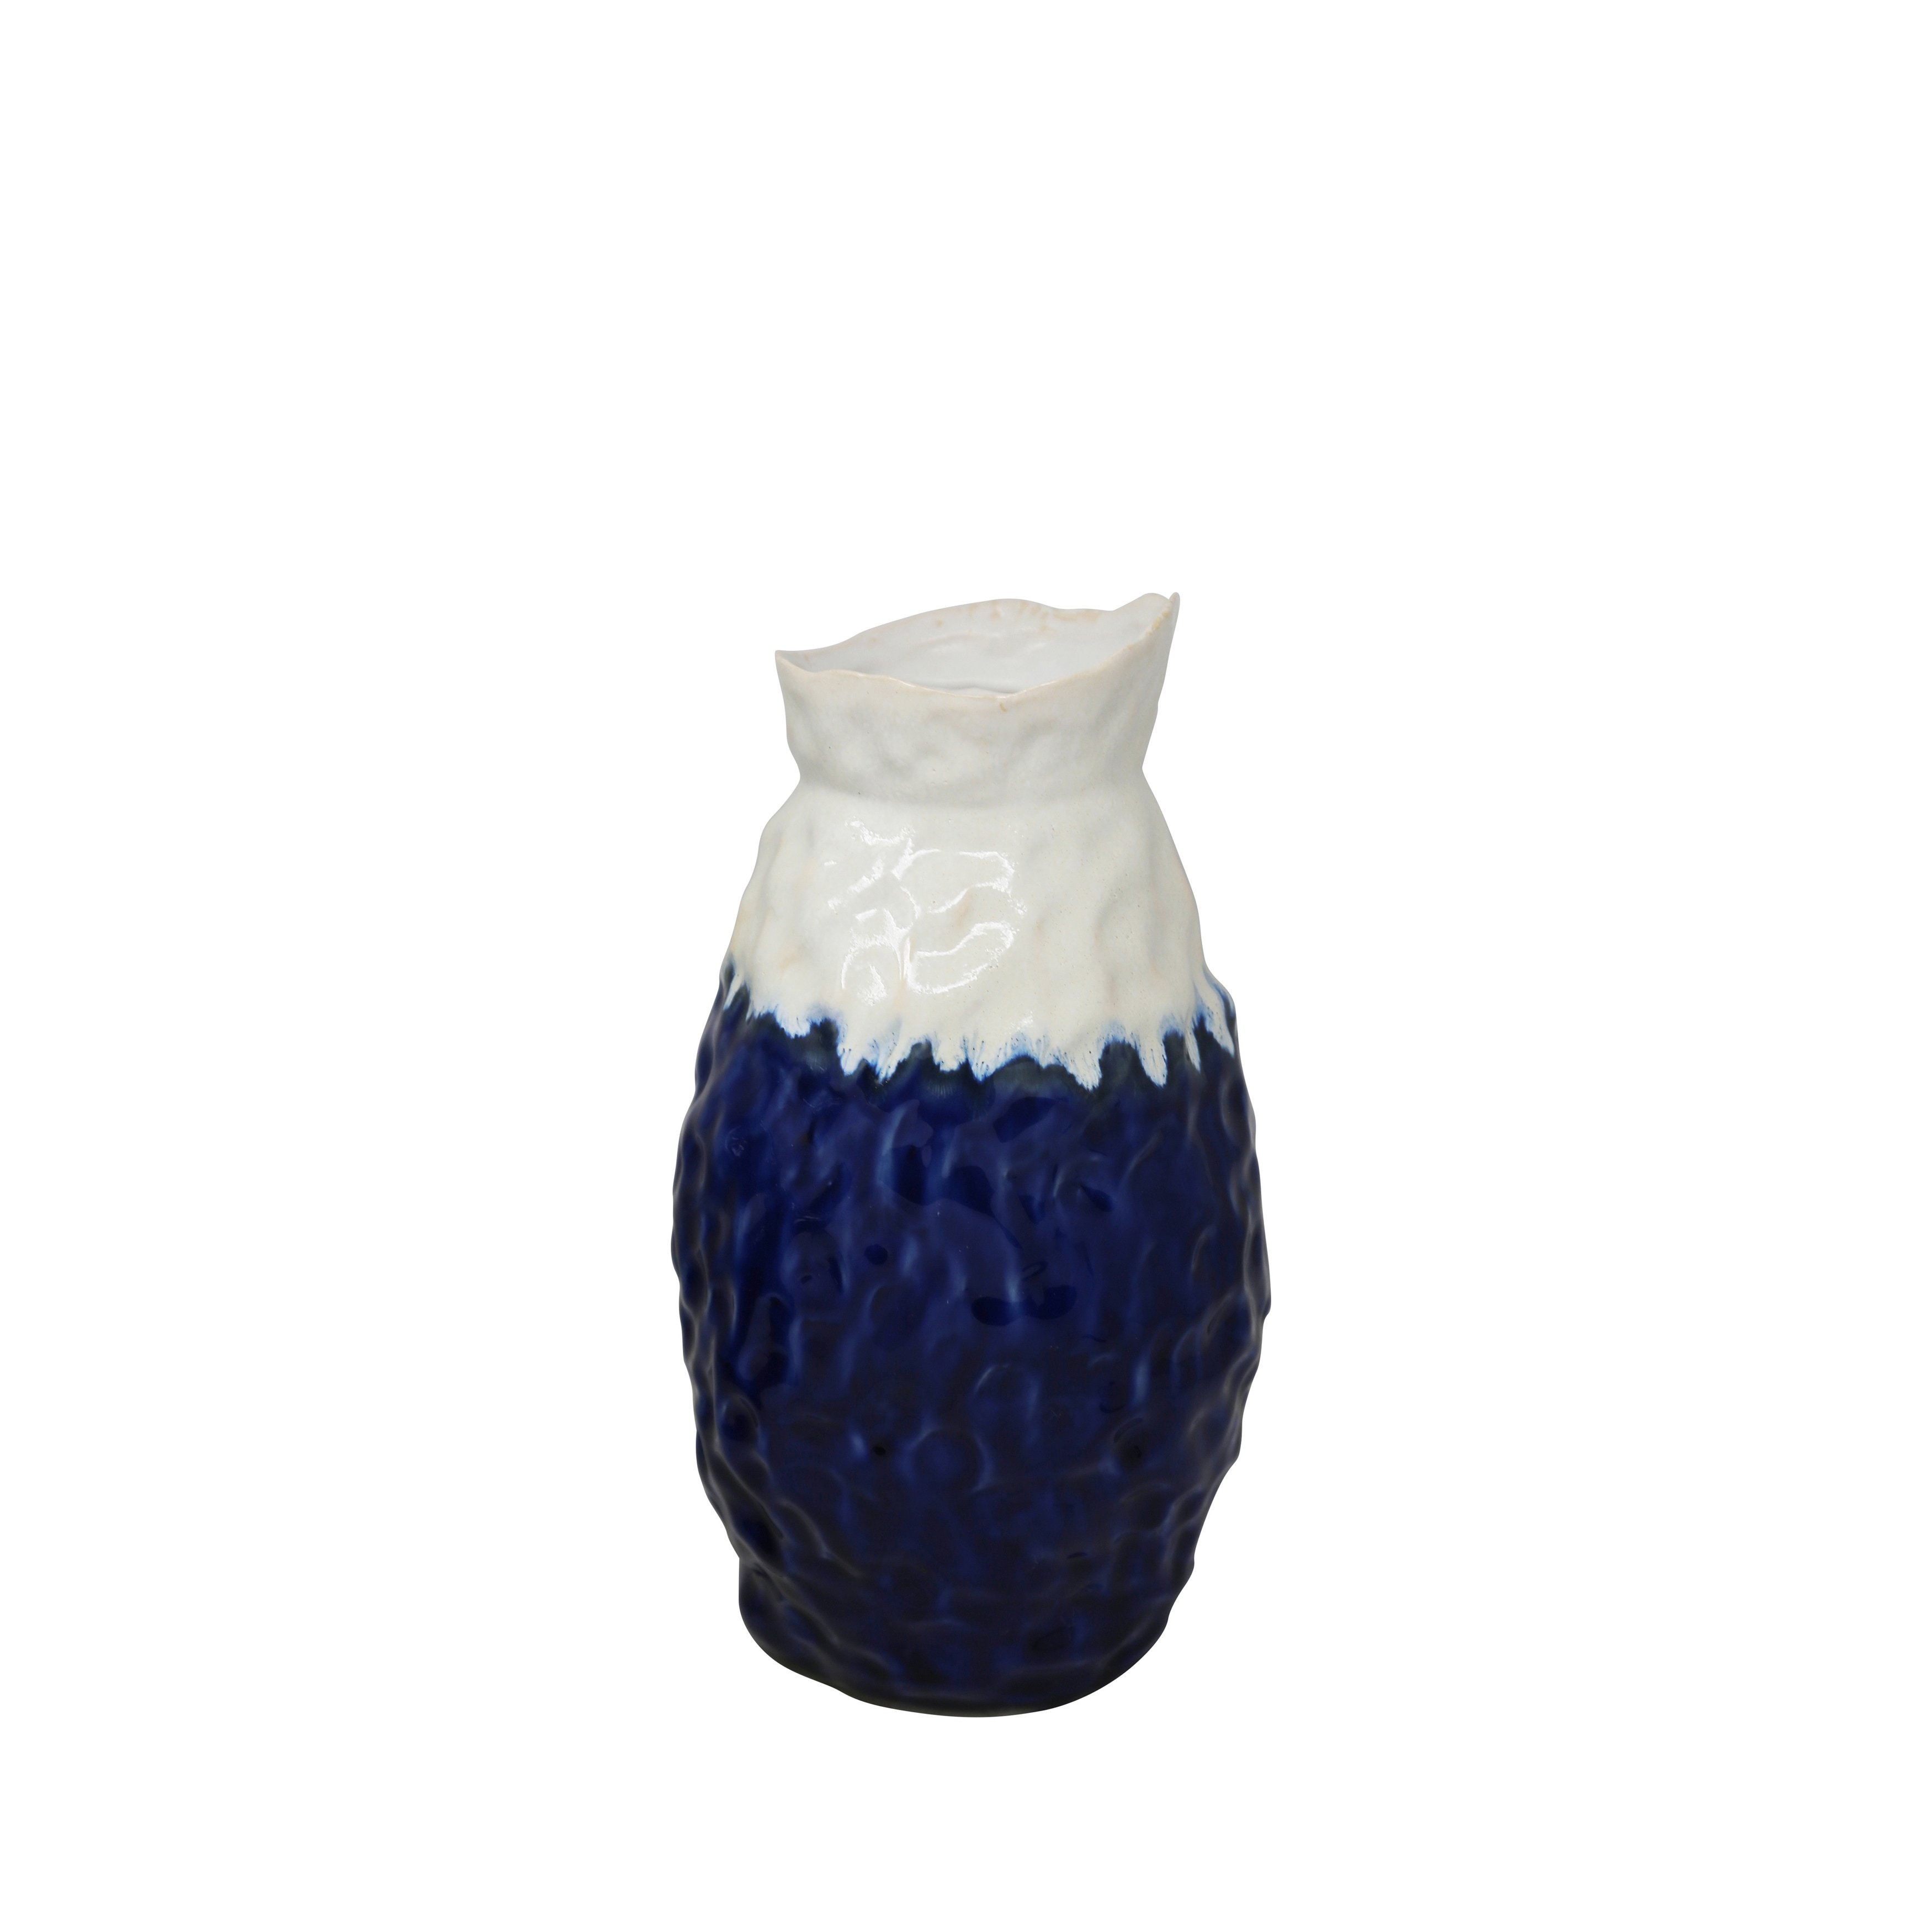 Contemporary Dual Tone Ceramic Vase with Flared Base, Large, White and Blue